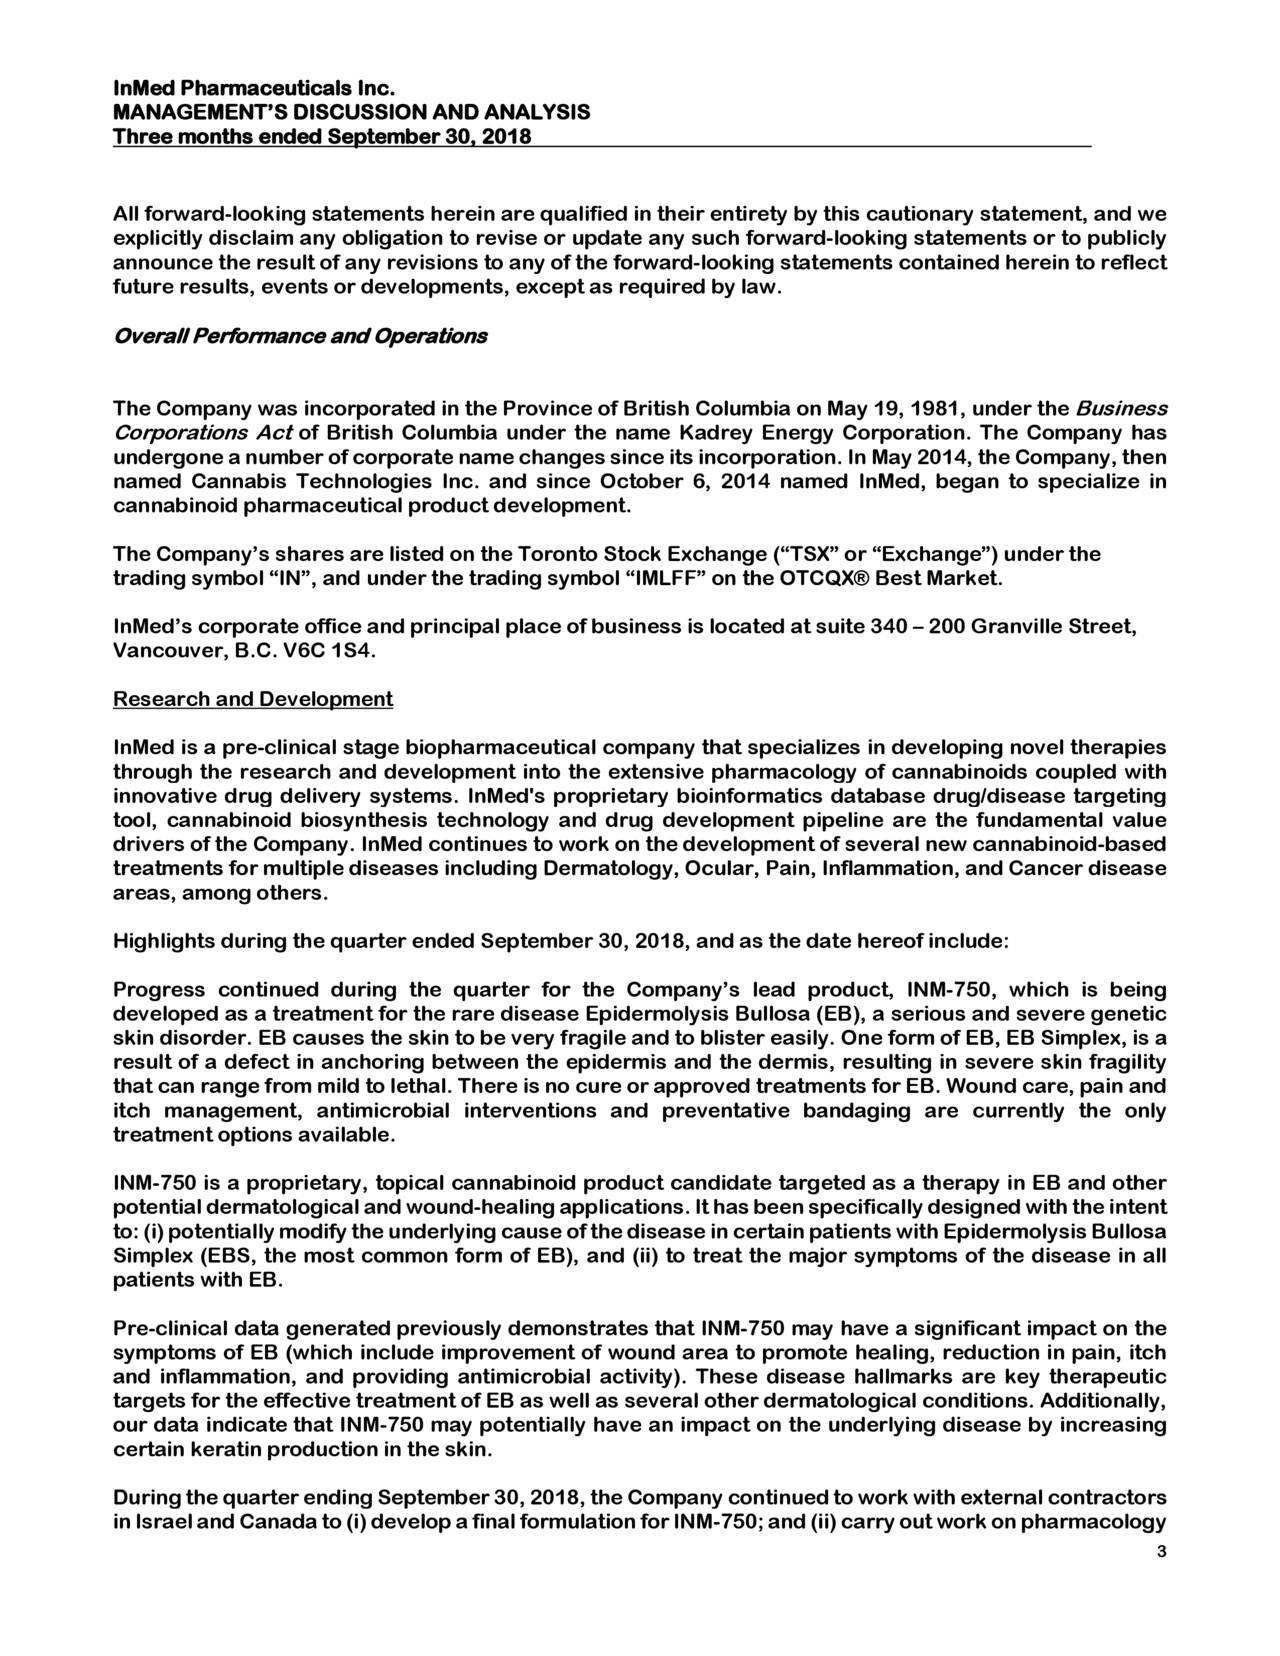 """MANAGEMENT'S DISCUSSION AND ANALYSIS Three months ended September 30, 2018 All forward-looking statements herein are qualified in their entirety by this cautionary statement, and we explicitly disclaim any obligation to revise or update any such f orward-looking statements or to publicly announce the result of any revisions to any of the forward-looking statements contained herein to reflect future results, events or developments, except as required by law. Overall Performance and Operations The Company was incorporated in the Province of British Columbia on May 19, 1981, under the Business Corporations Act of British Columbia under the name Kadrey Energy Corporation. The Company has undergone a number of corporate name changes since its incorporation . In May 2014,the Company, then named Cannabis Technologies Inc. and since October 6, 2014 named InMed, began to specialize in cannabinoid pharmaceutical product development. The Company's shares are listed on the Toronto Stock Exchange (""""TSX"""" or """"Exchange"""") under the trading symbol """"IN"""", and under the trading symbol """"IMLFF"""" on the OTCQX® Best Market. InMed's corporate office and principal place of business is located at suite340 – 200 Granville Street, Vancouver, B.C. V6C 1S4. Research and Development InMed is a pre-clinical stage biopharmaceutical company that specializes in developing novel therapies through the research and development into the extensive pharmacology of cannabinoids coupled with innovative drug delivery systems. InMed's proprietary b ioinformatics database drug/disease targeting tool, cannabinoid biosynthesis technology and drug development pipeline are the fundamental value drivers of the Company. InMed continues to work on the development of several new cannabinoid-based treatments for multiple diseases includingDermatology, Ocular, Pain, Inflammation, and Cancer disease areas, among others. Highlights during the quarter ended September 30, 2018, and as the date hereof include: Progress continued"""